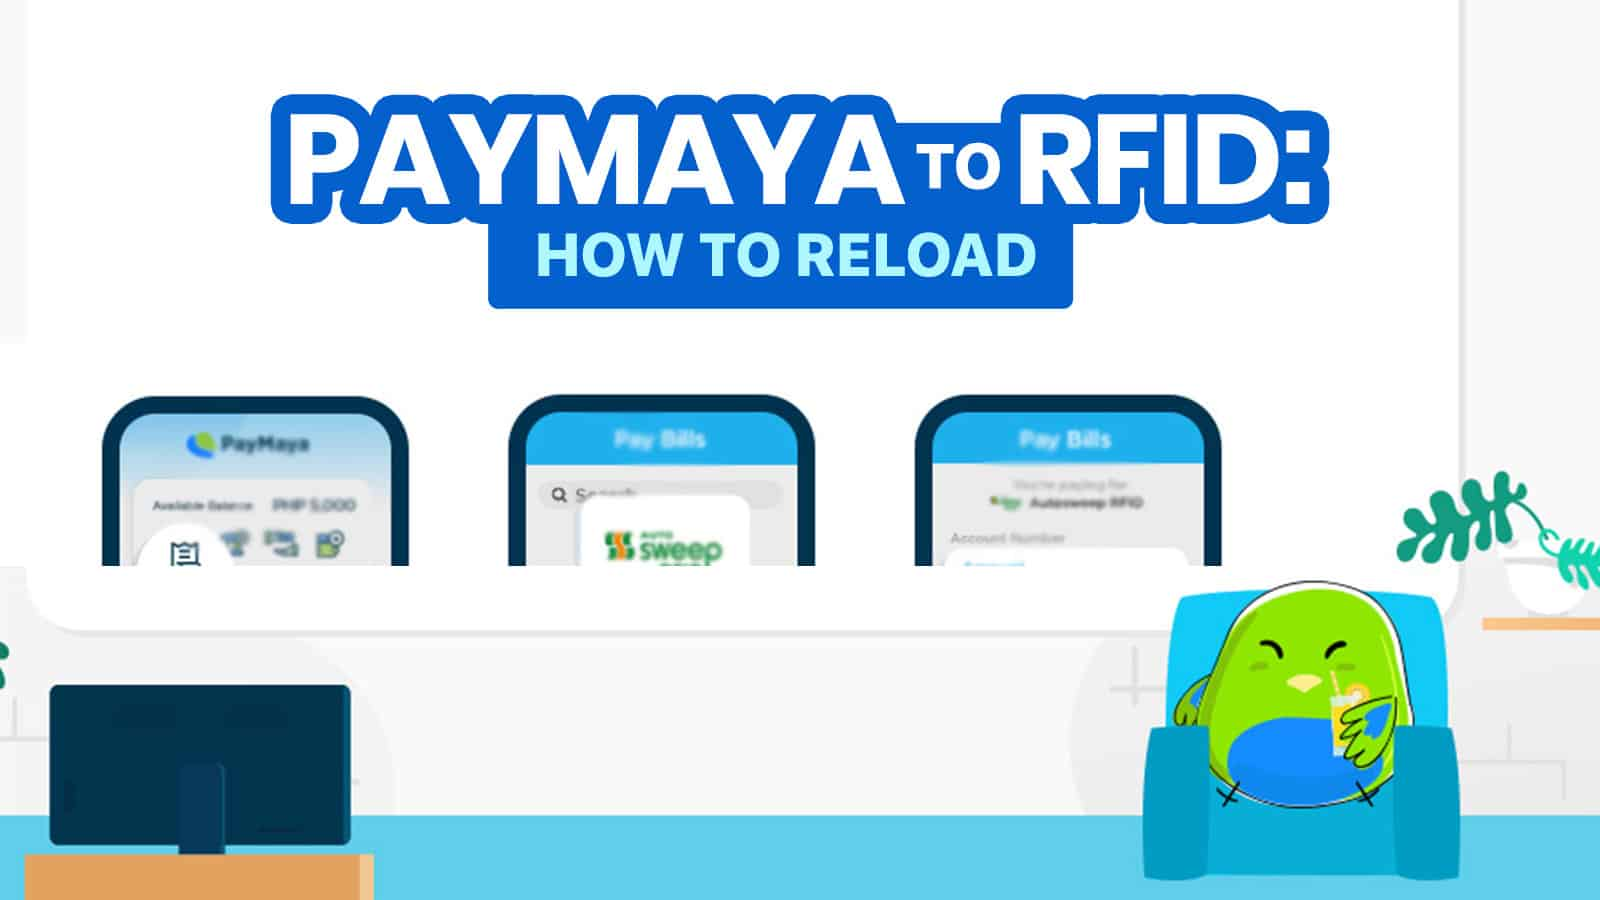 PAYMAYA TO RFID: How to Reload Autosweep & Easytrip